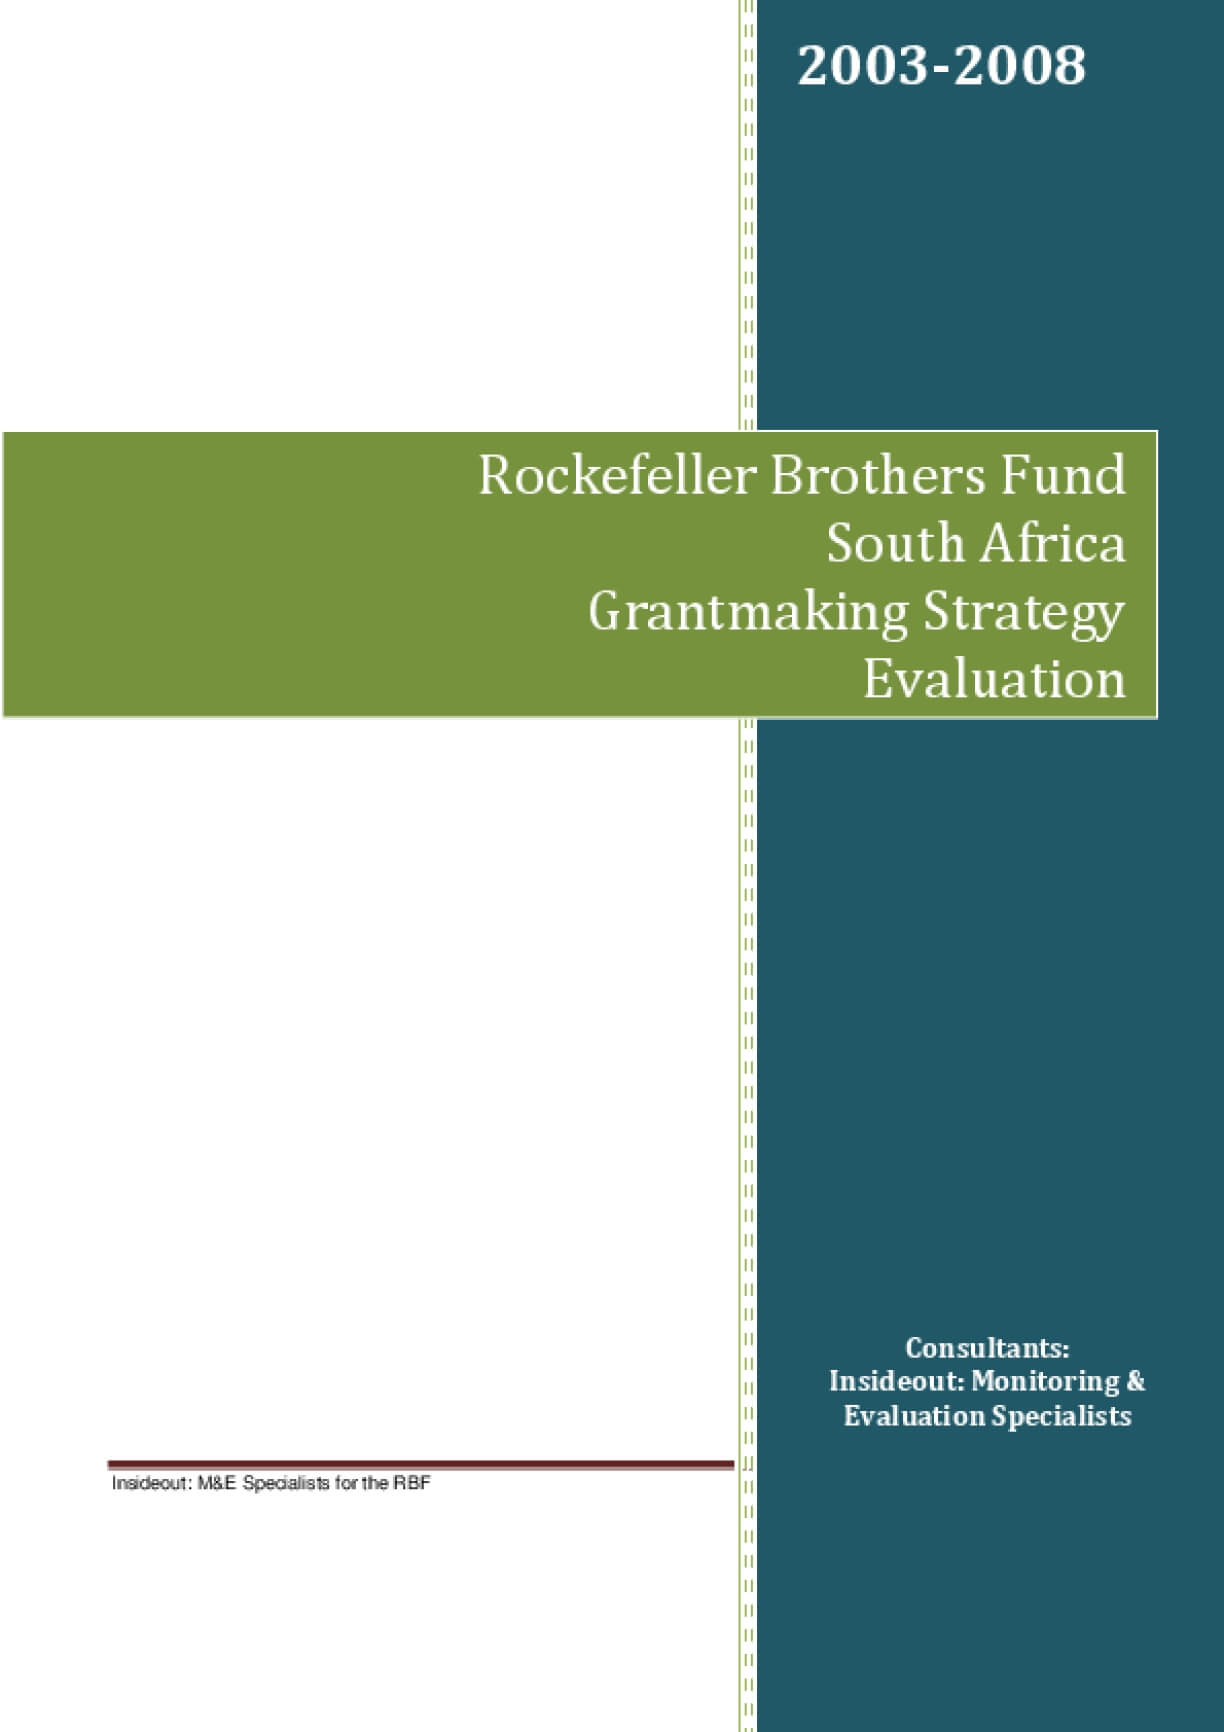 Rockefeller Brothers Fund South Africa Grantmaking Strategy Evaluation